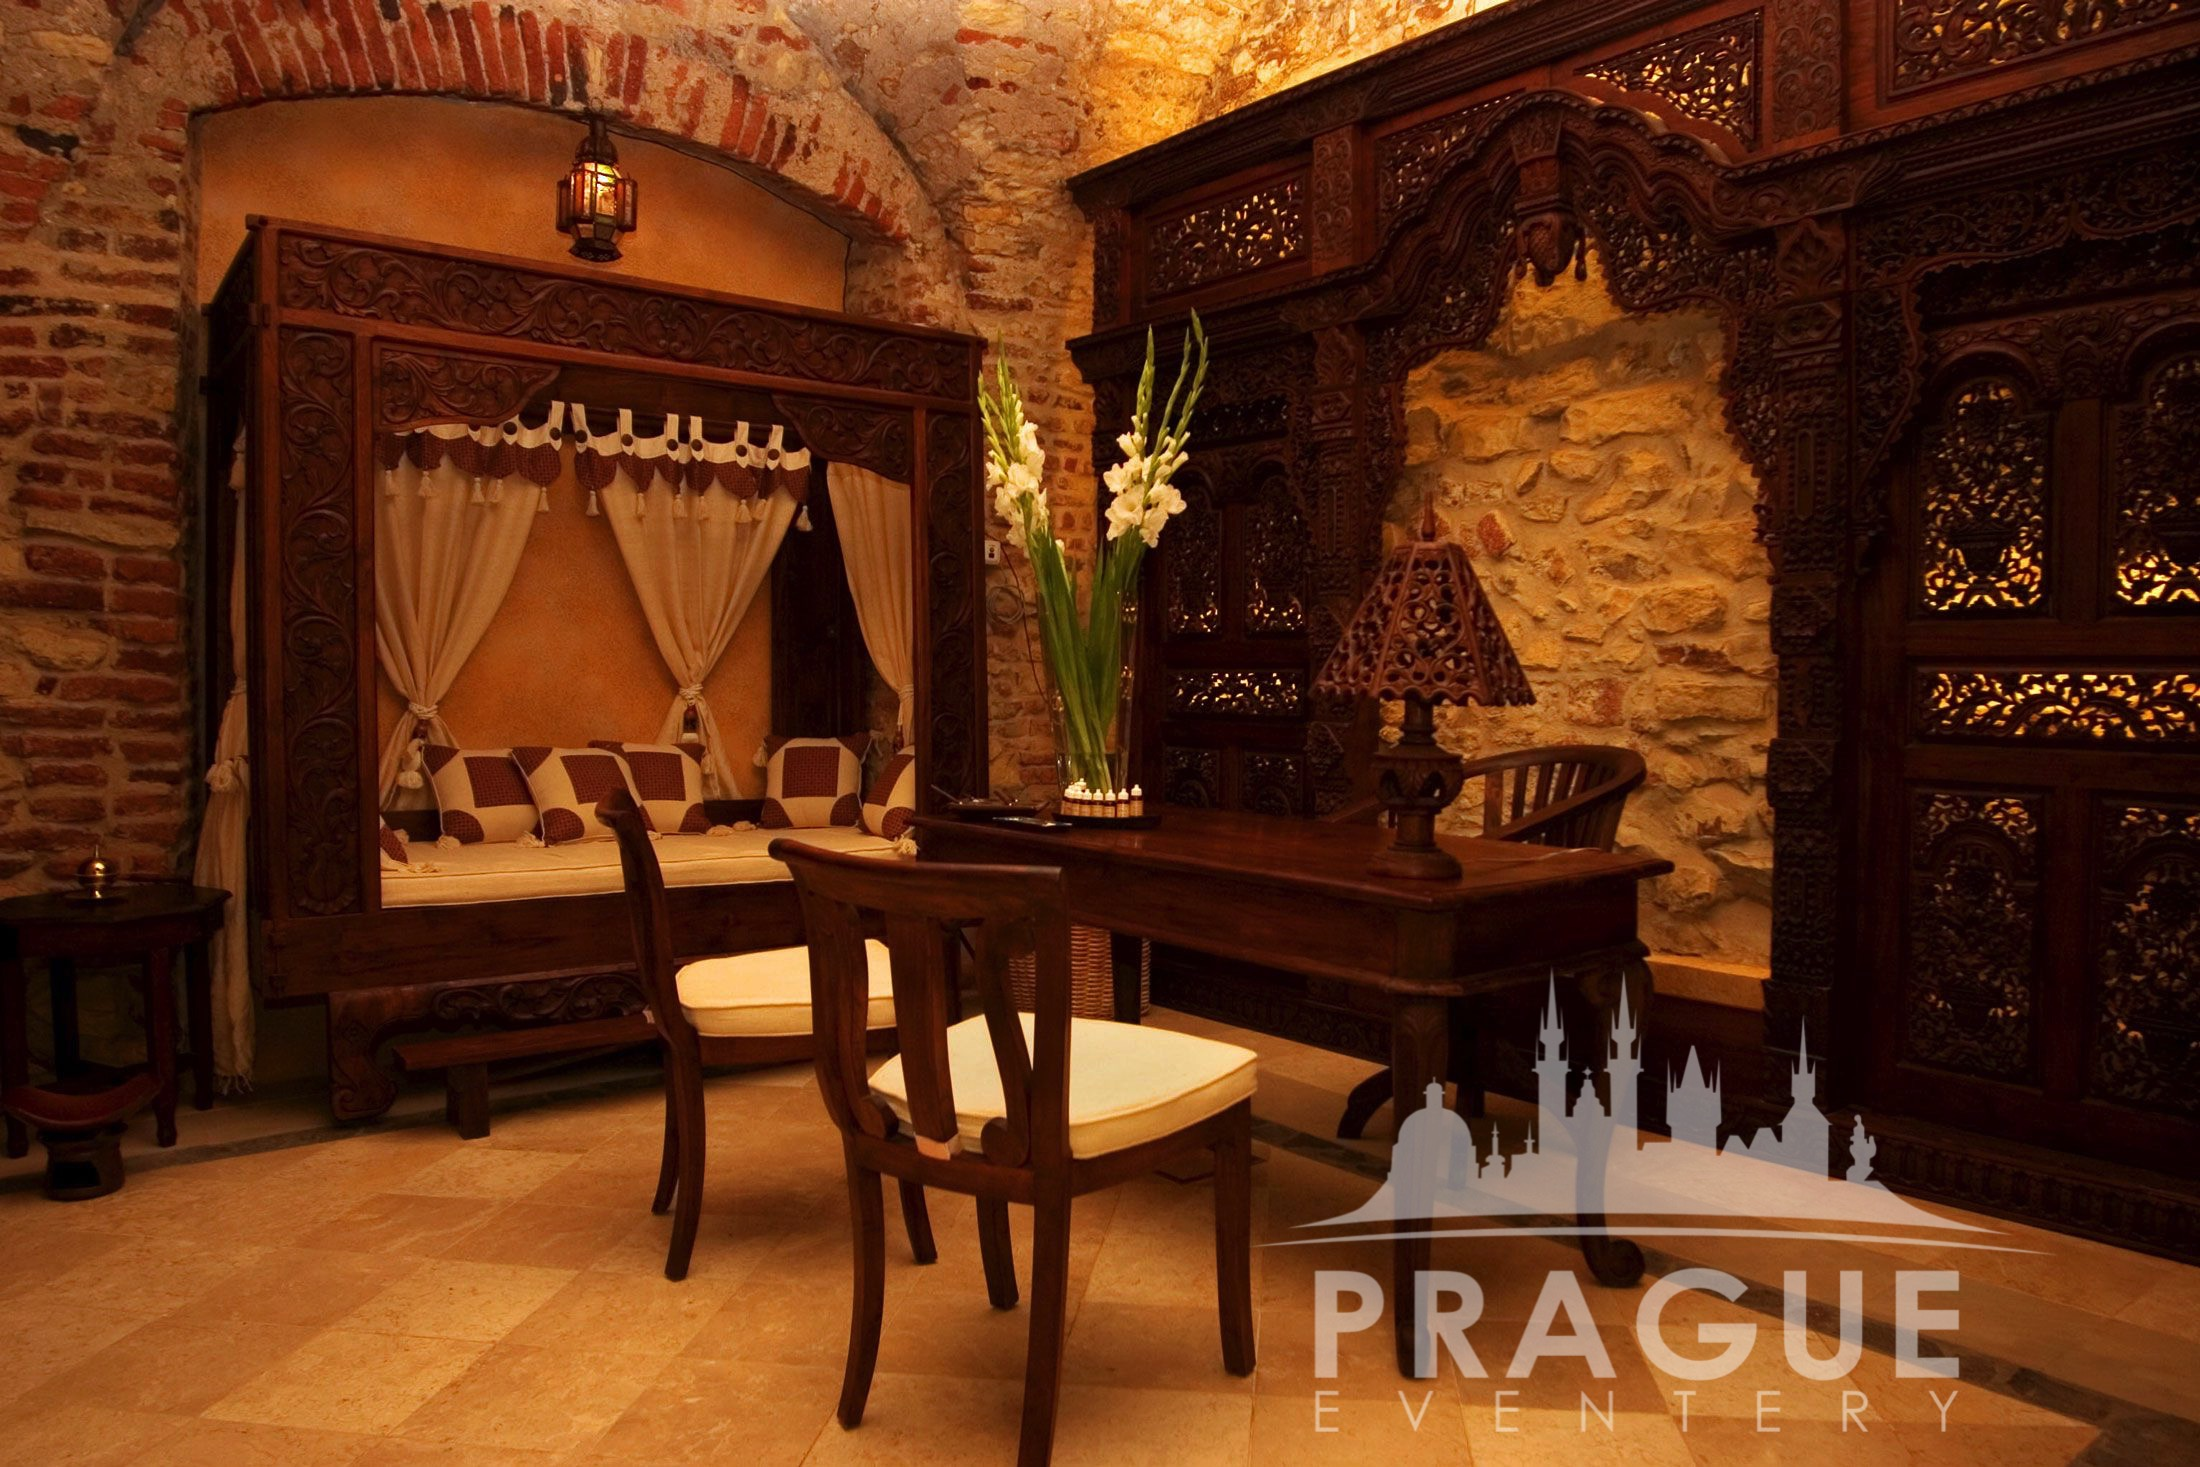 Alchymist grand hotel prague eventery design hotel prague for Design boutique hotel prag